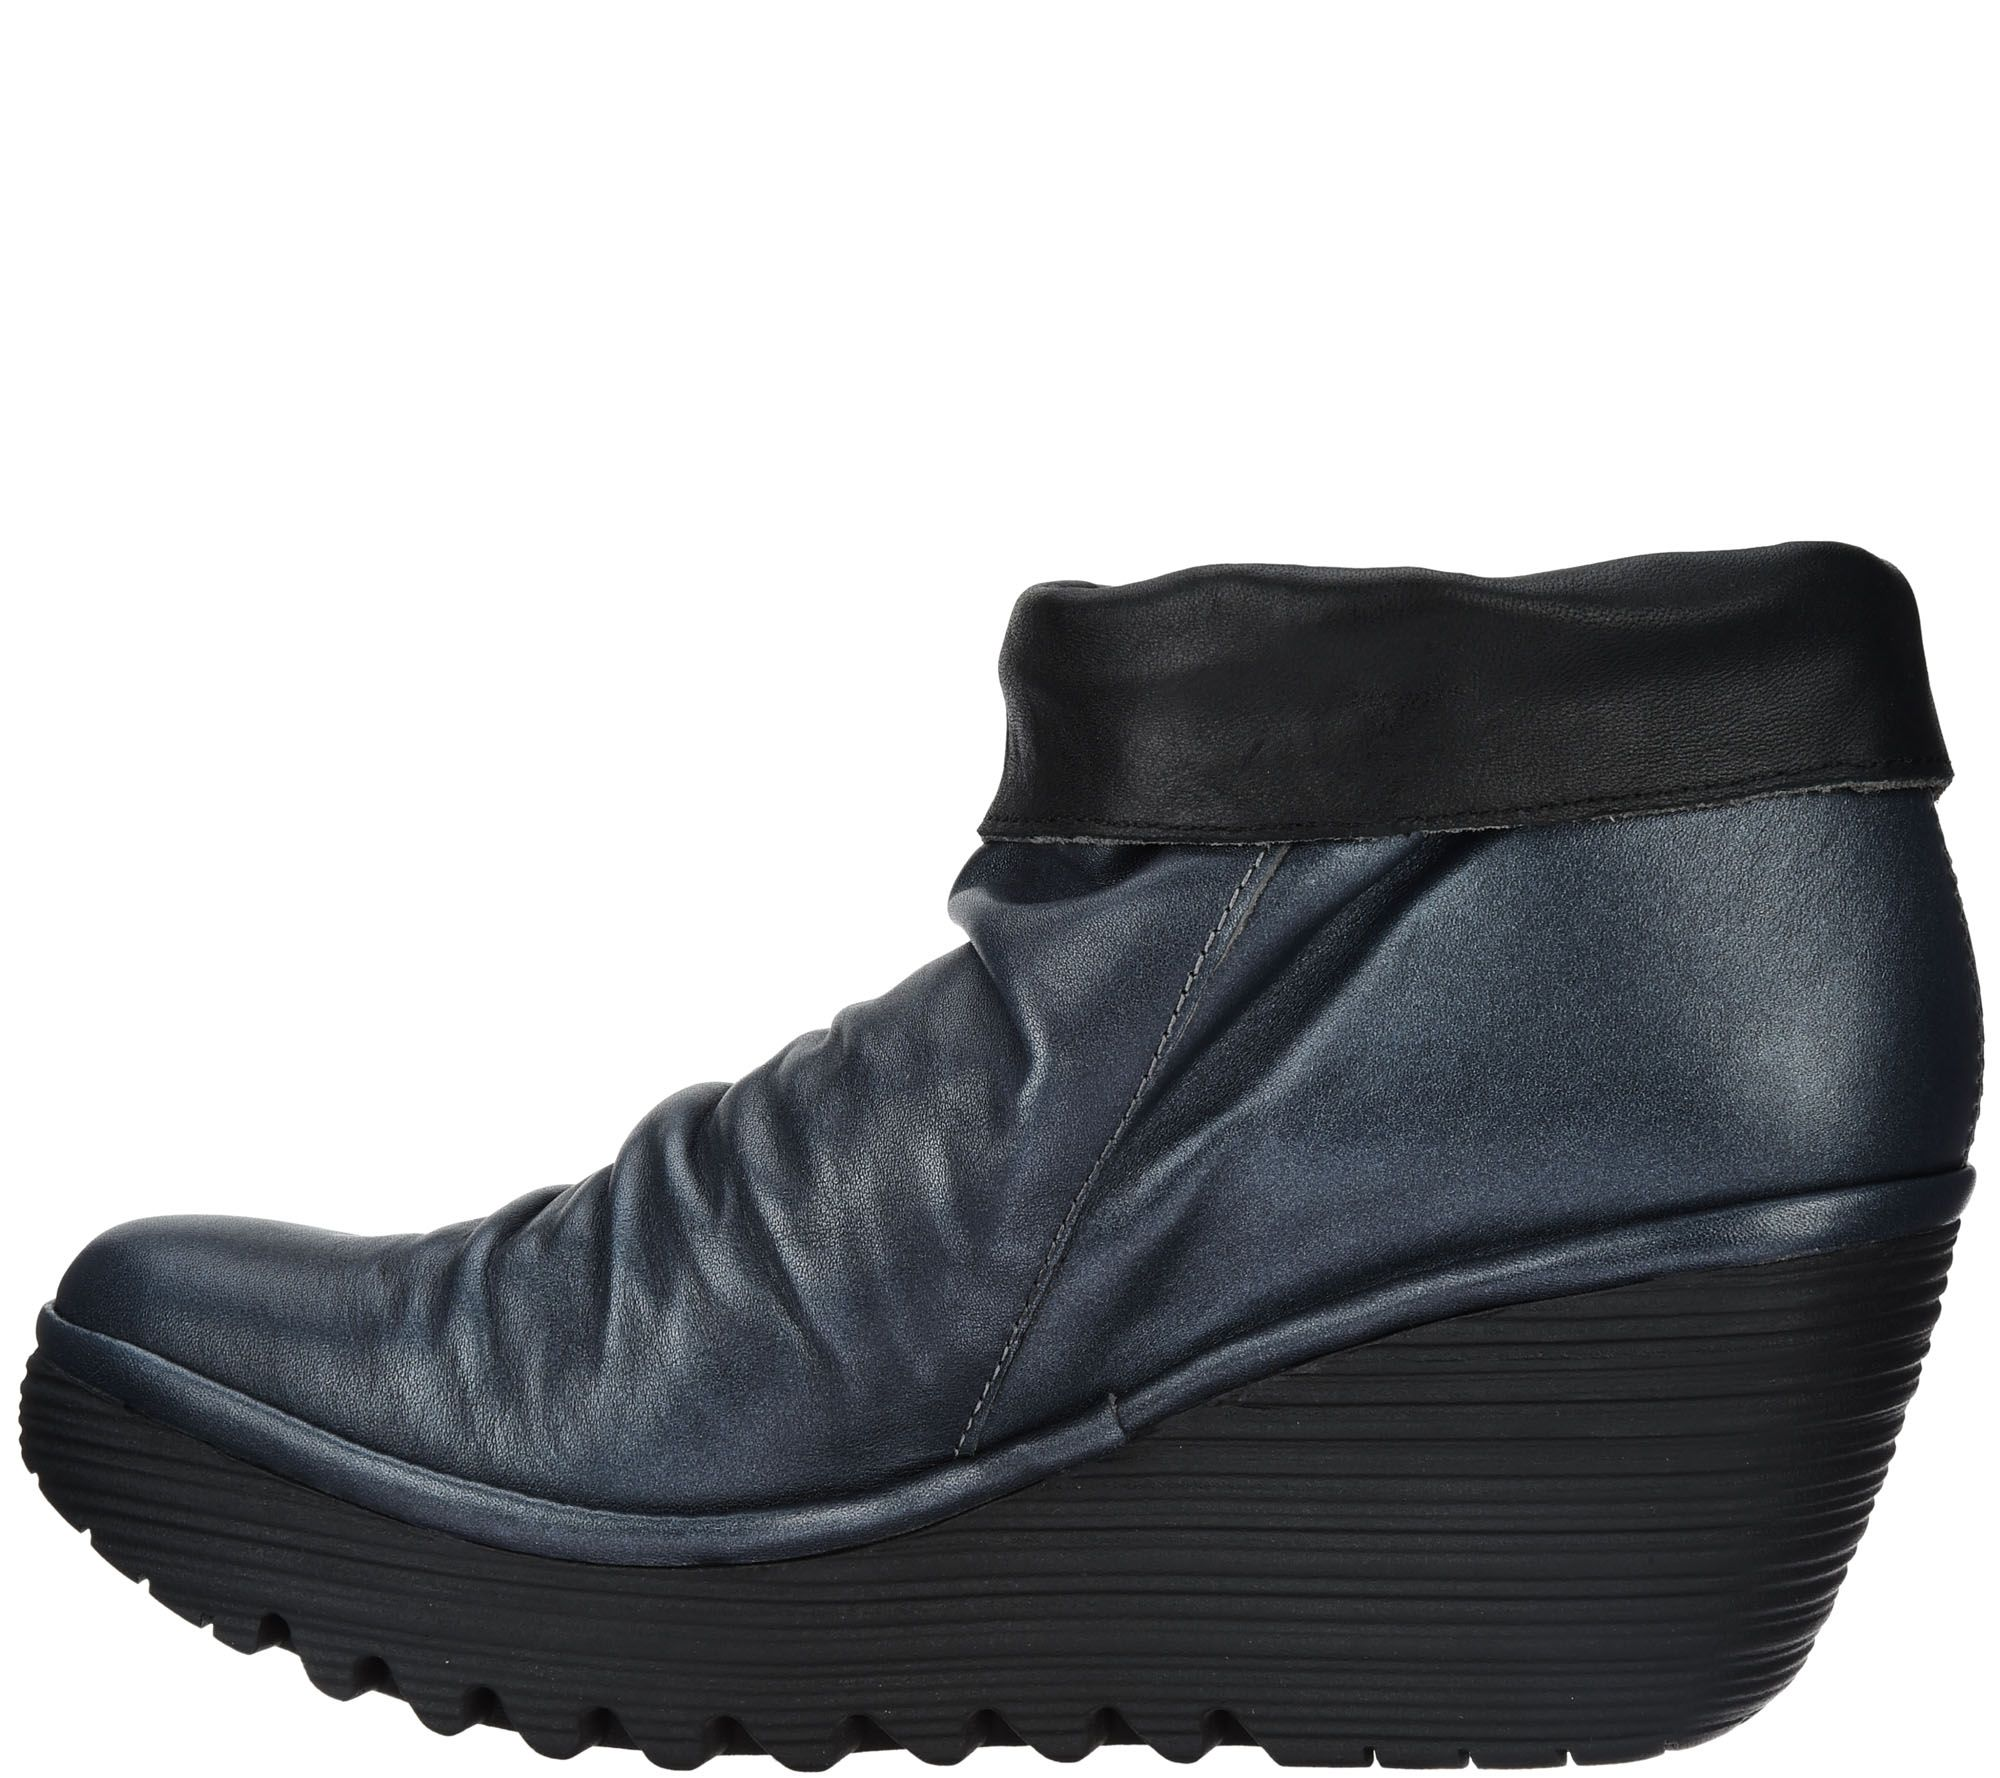 70ae8e056e9 FLY London Leather Wedge Ankle Boots - Yoxi - Page 1 — QVC.com